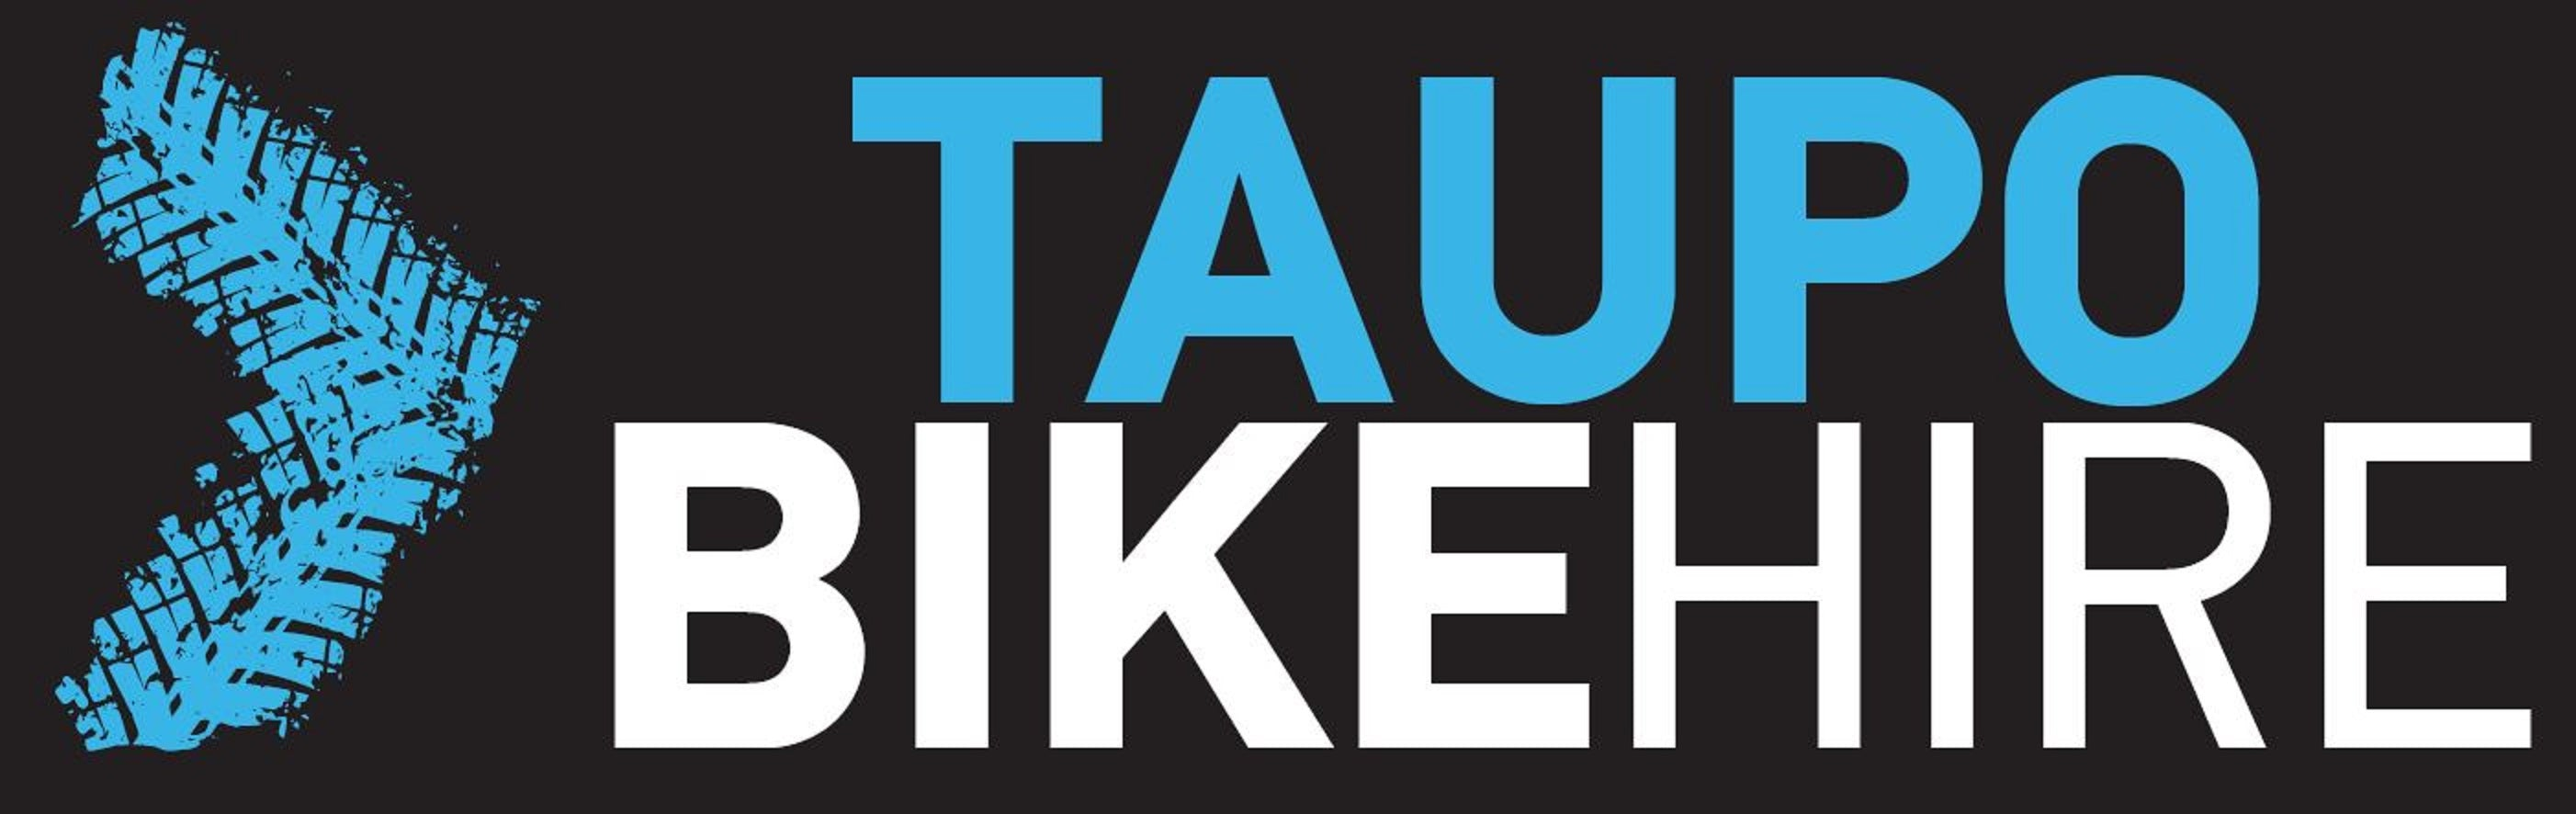 Taupo Bike Hire logo | bike rental agreement